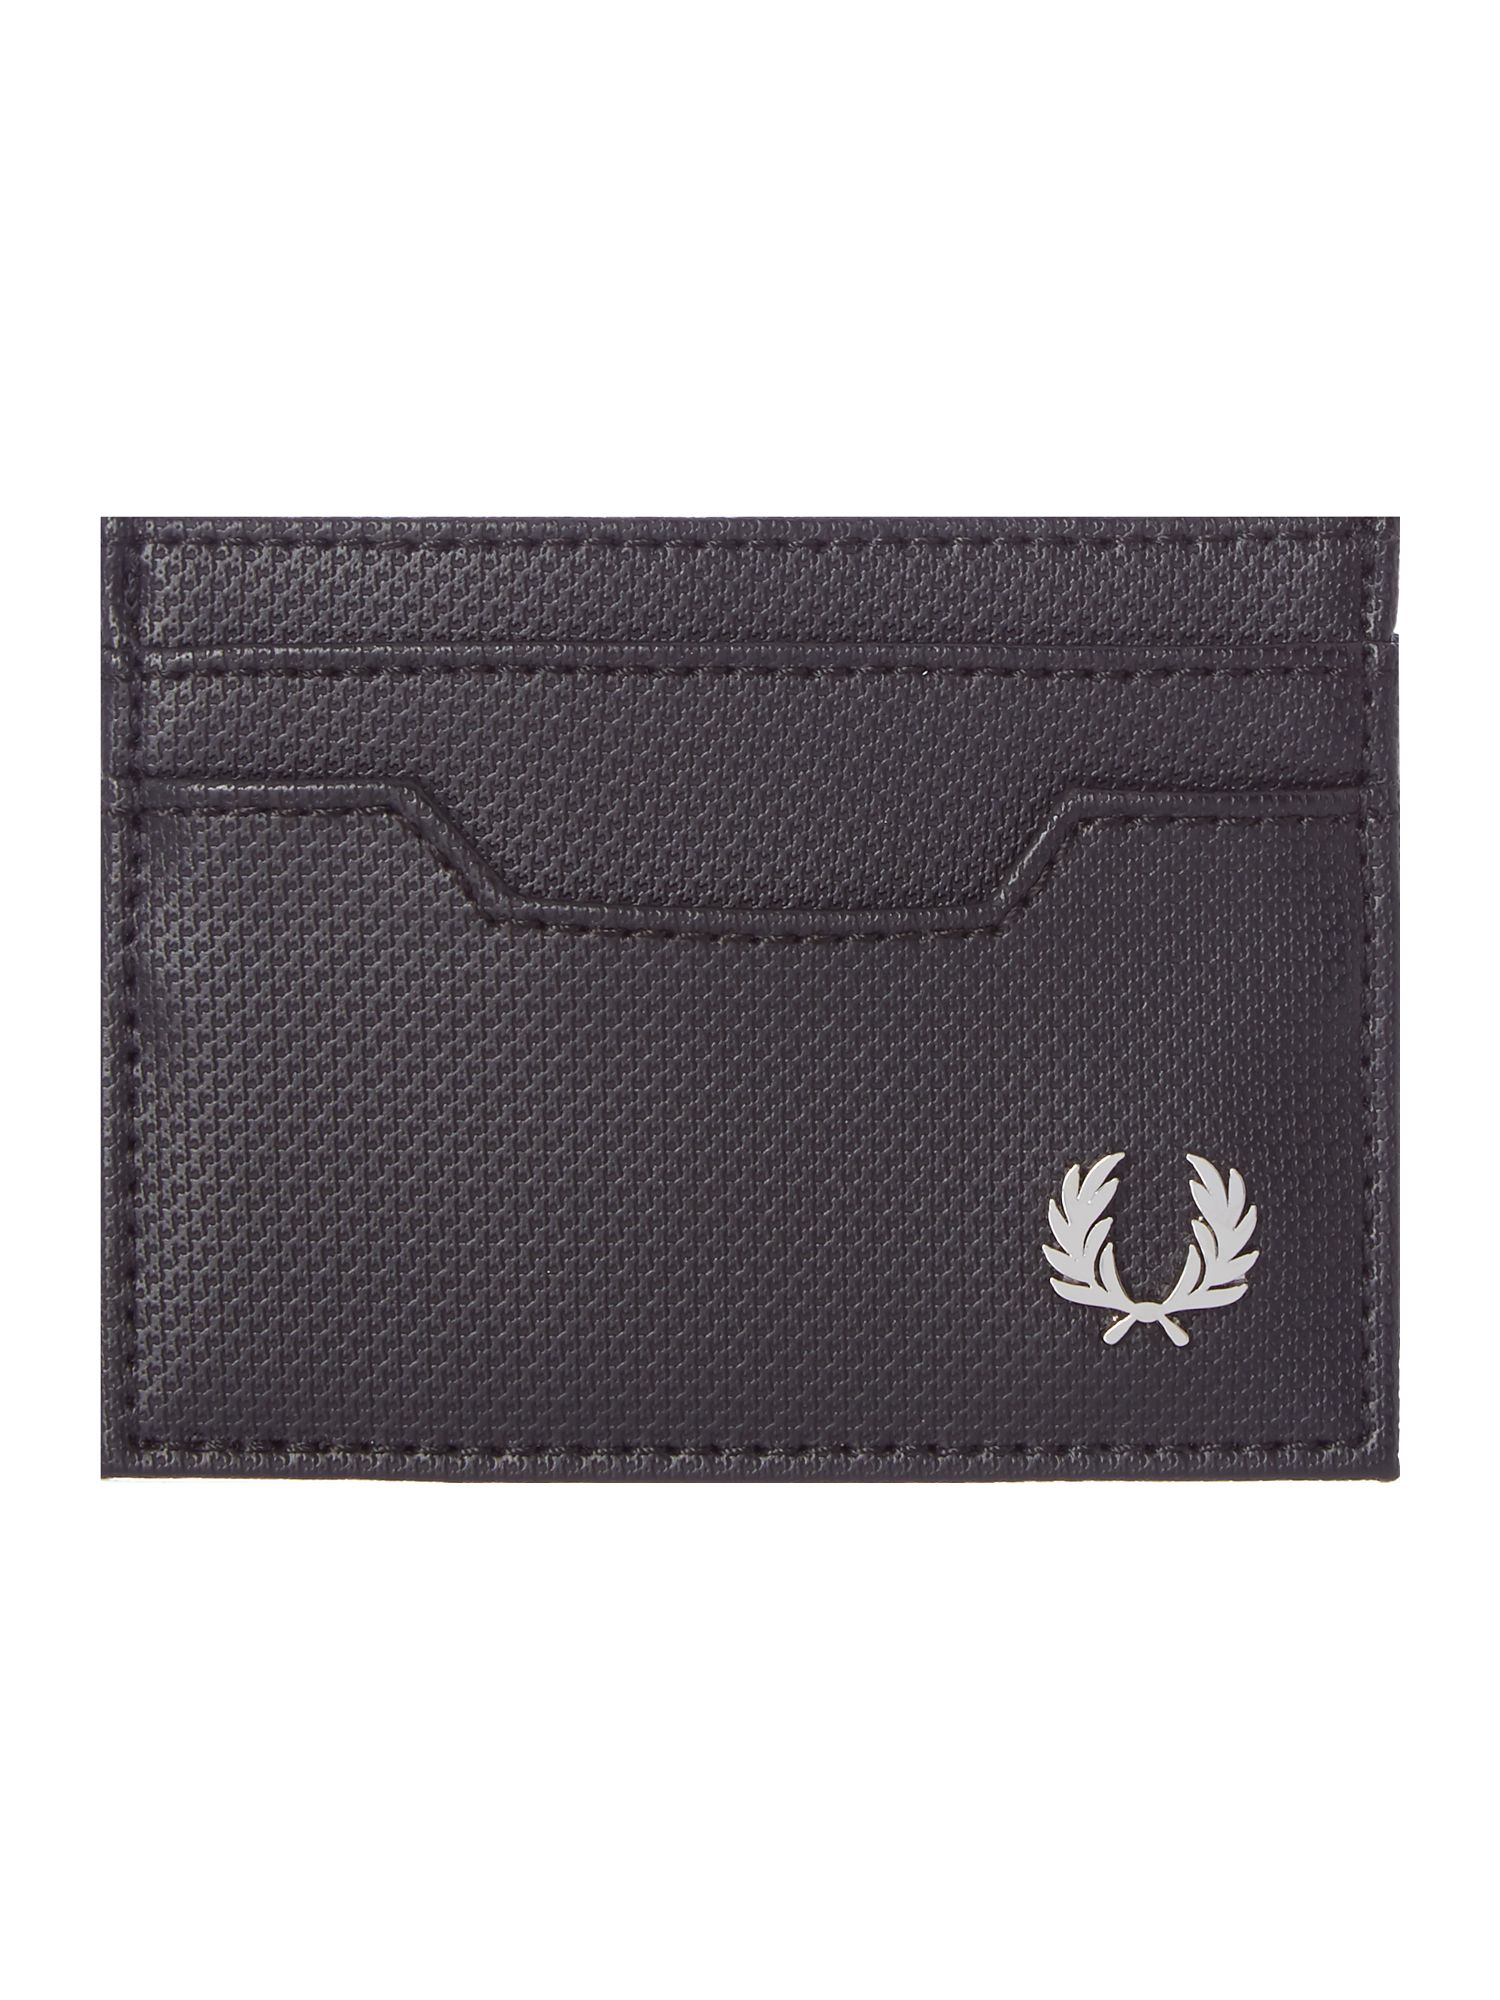 Fred perry classic scotch cardholder review for Quality classic house of fraser